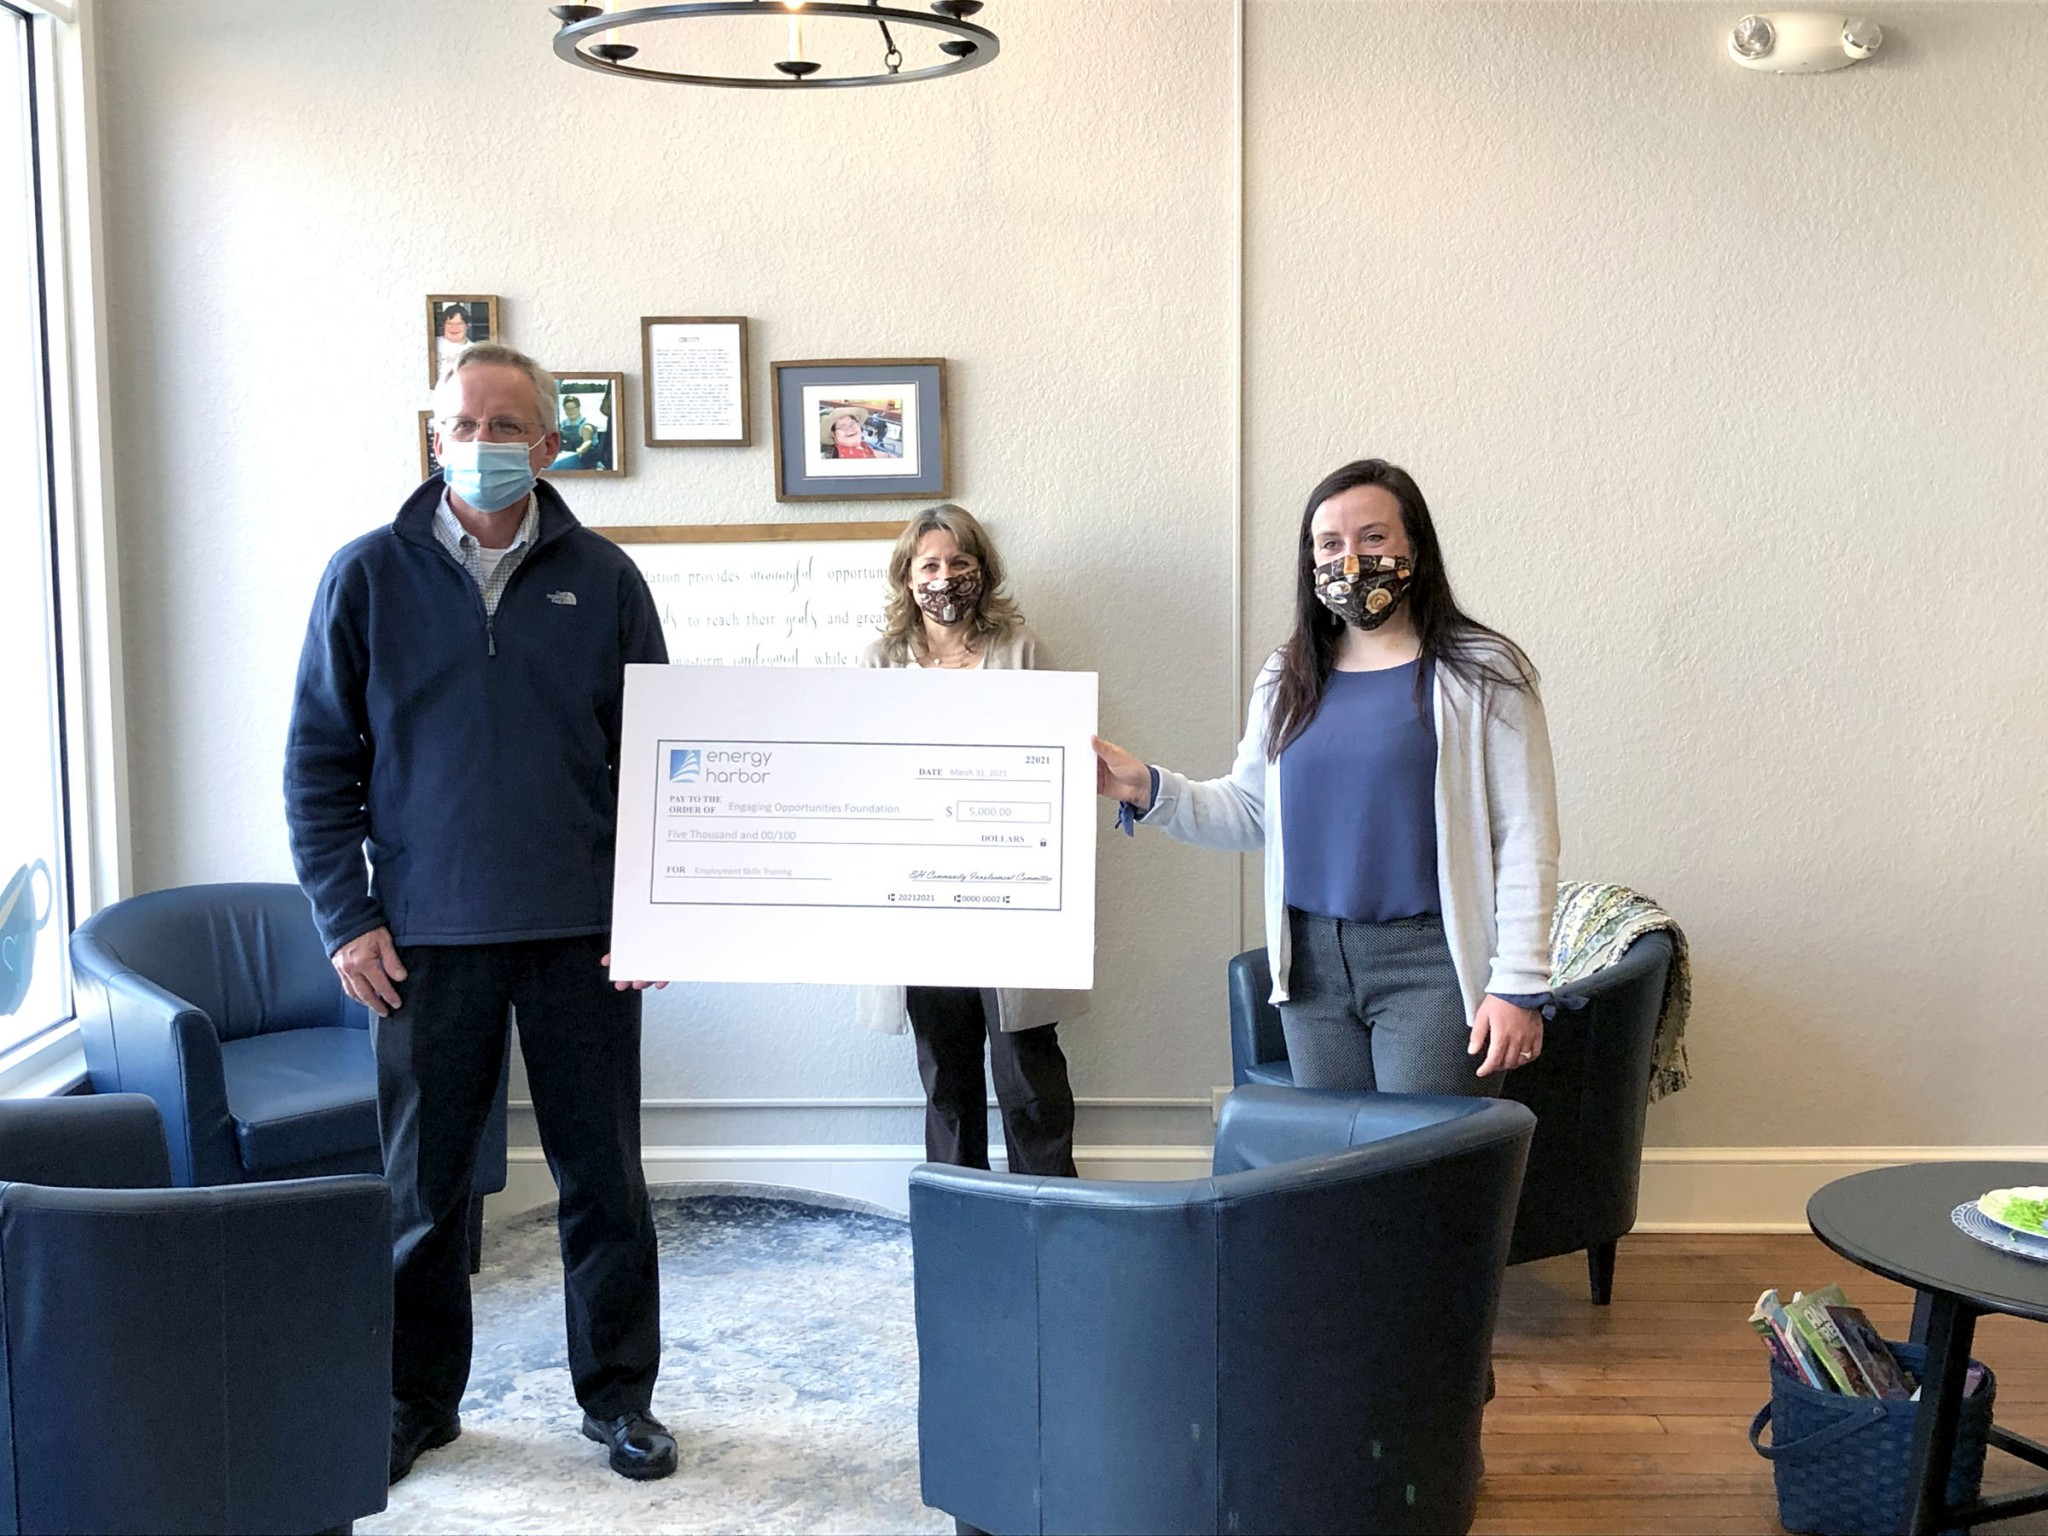 Doug Huey, plant  manager for Davis-Besse Nuclear Power Plant presents a check to Madeline Hines, board member for the foundation and Lead Job Coach for Christy's Corner, while Kathy Barbee, Executive Director of Engaging Opportunities Foundation looks on. (Submitted photo)